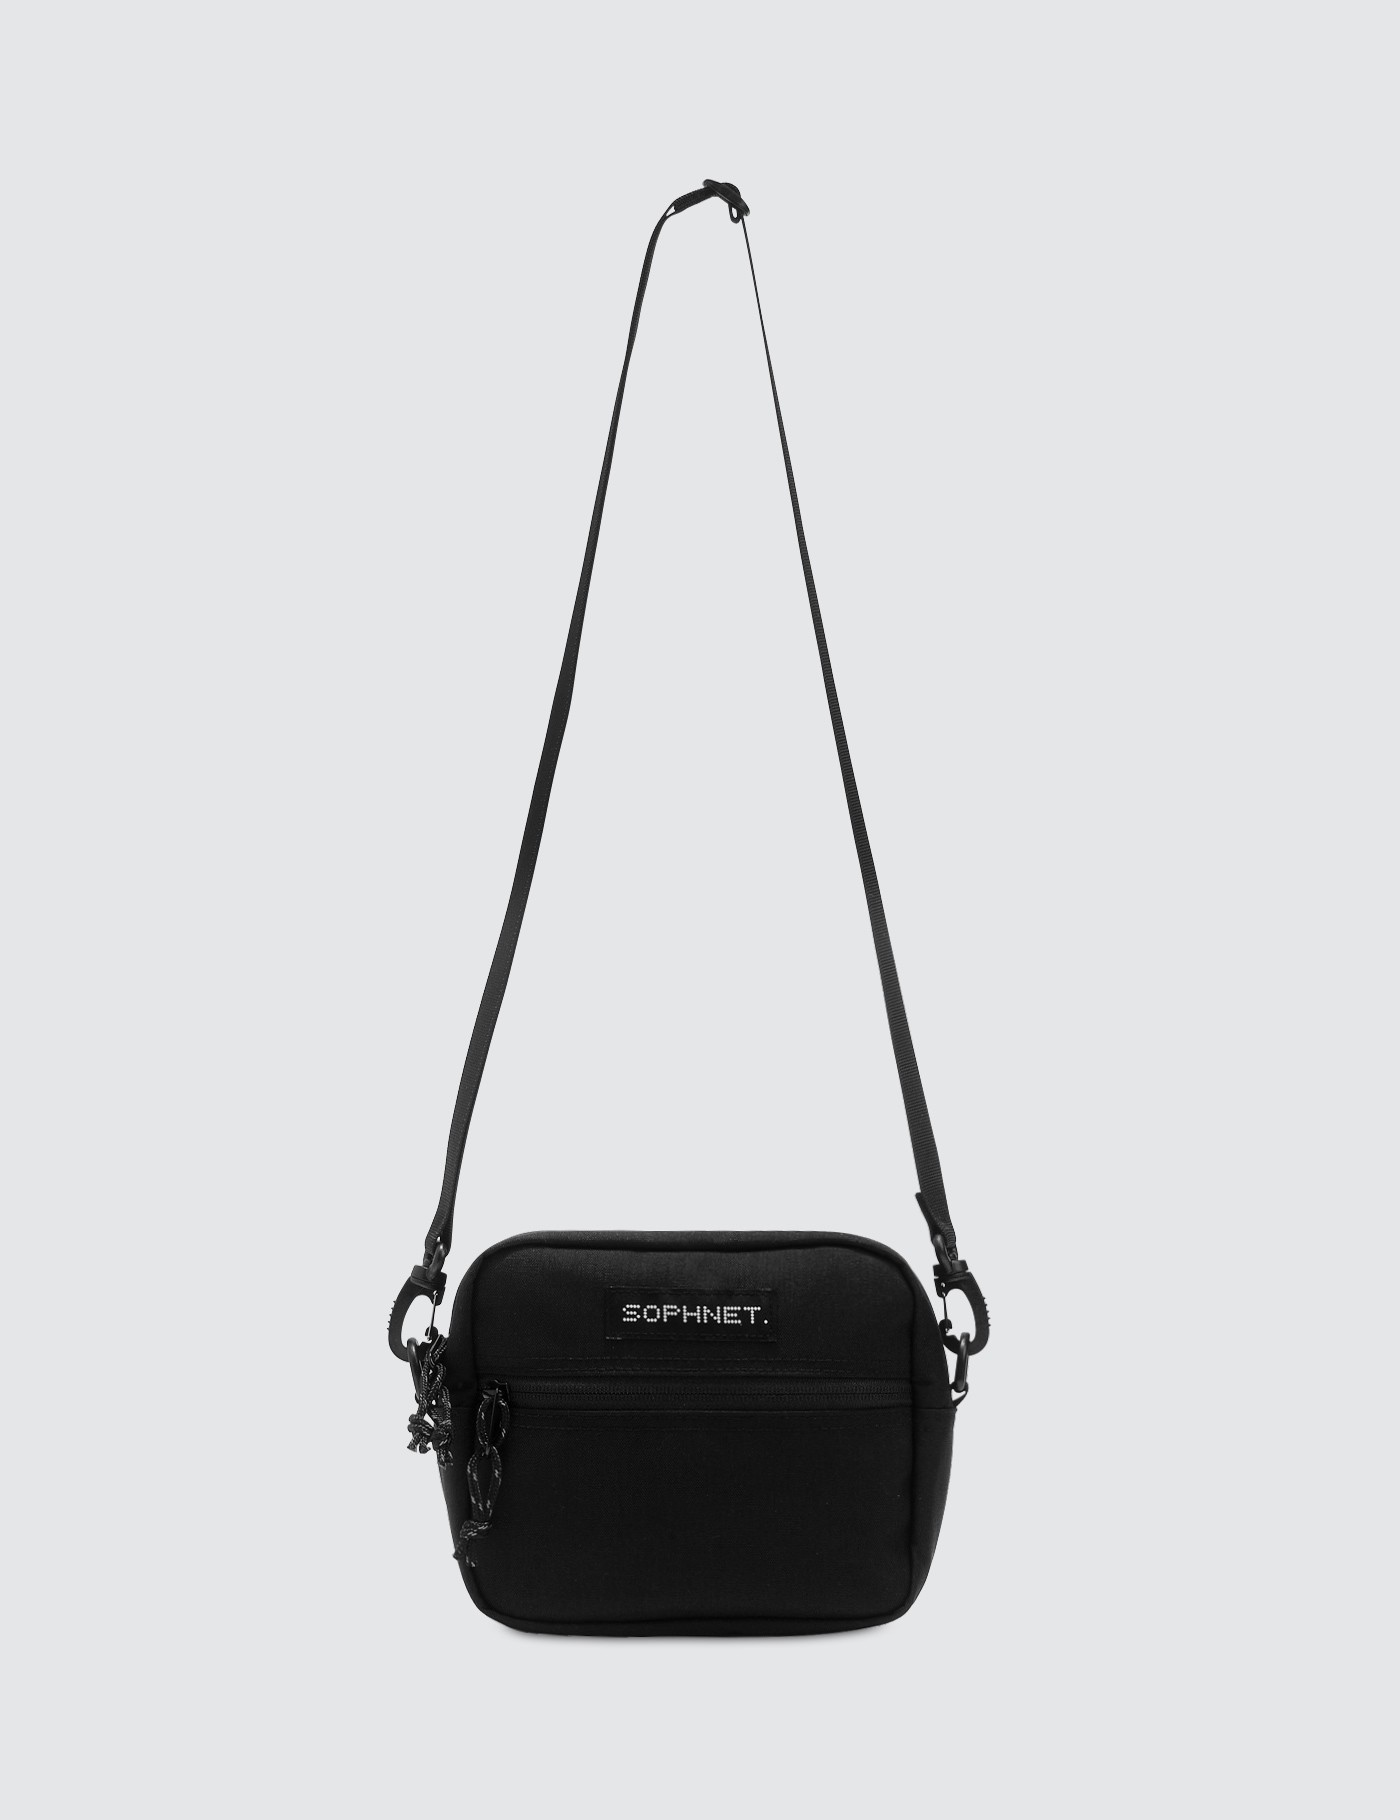 Sophnet Shoulder Bag